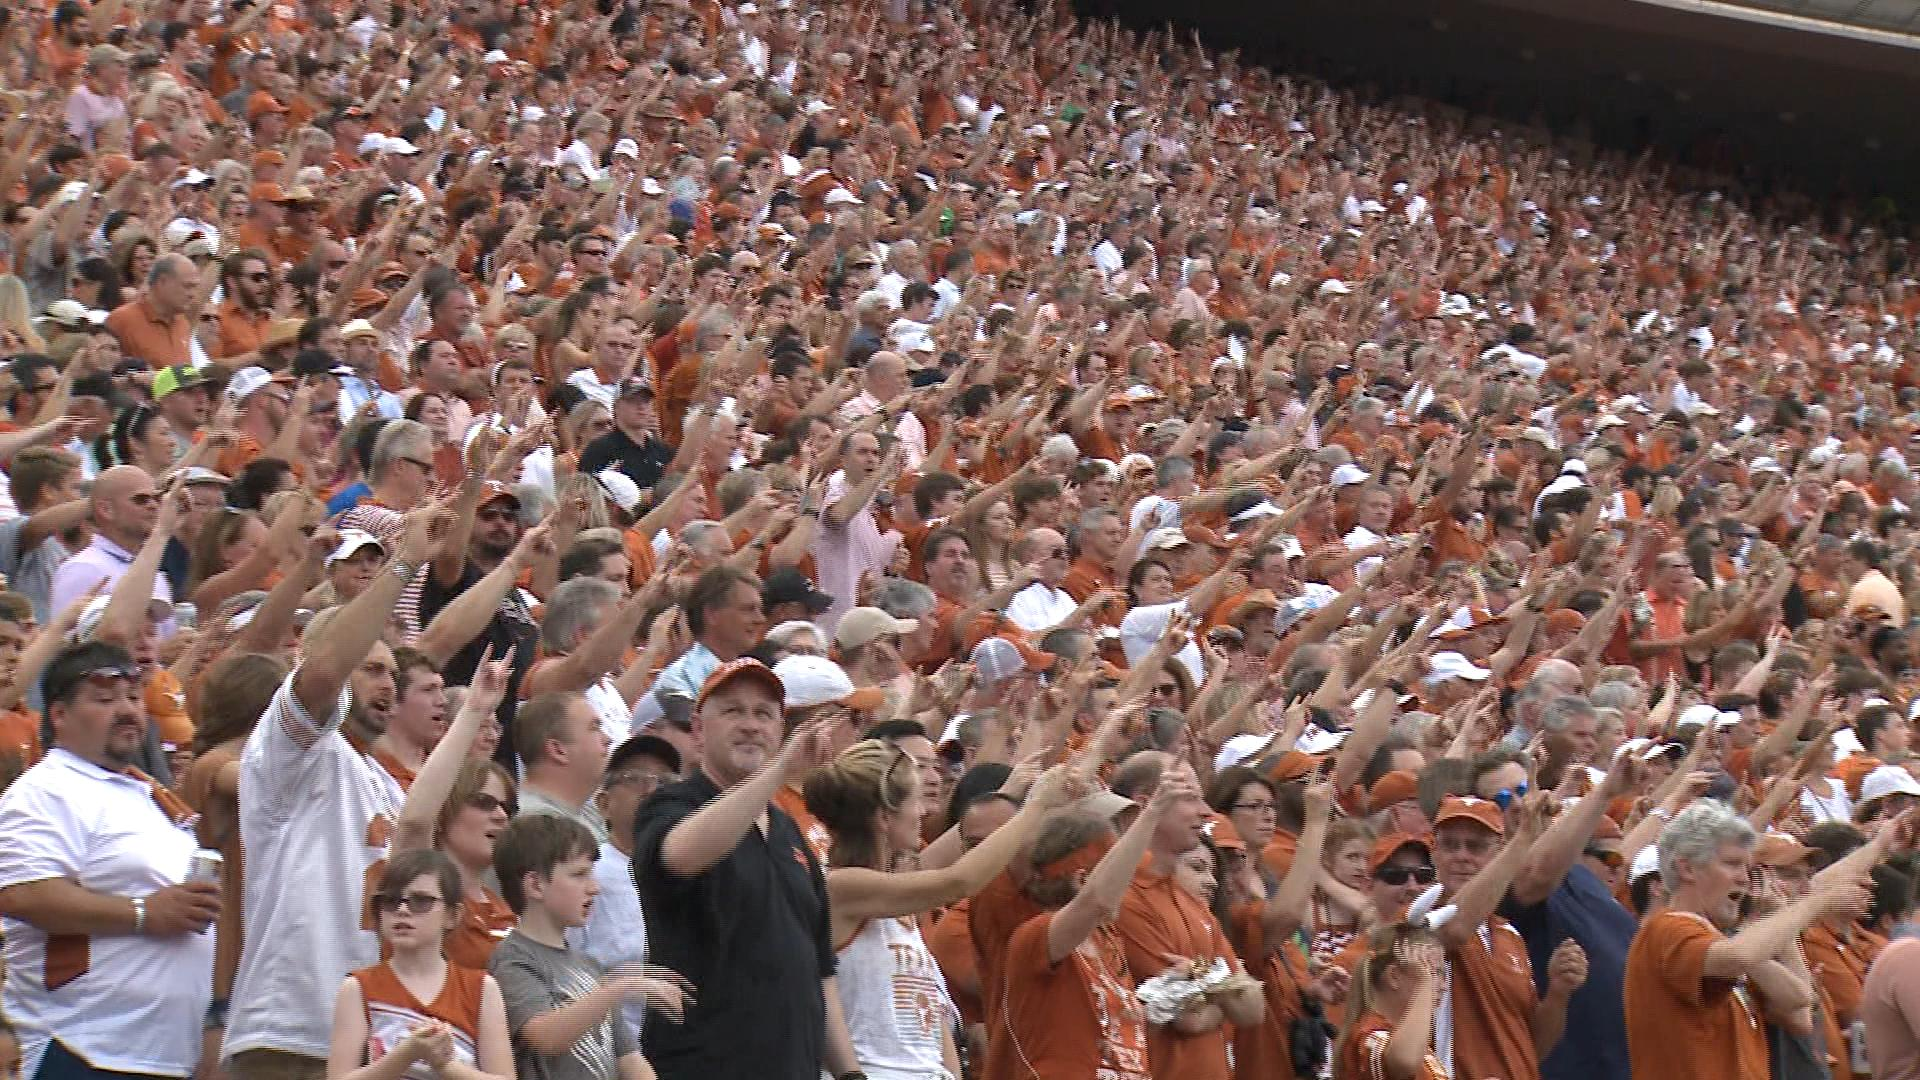 crowded DKR STADIUM